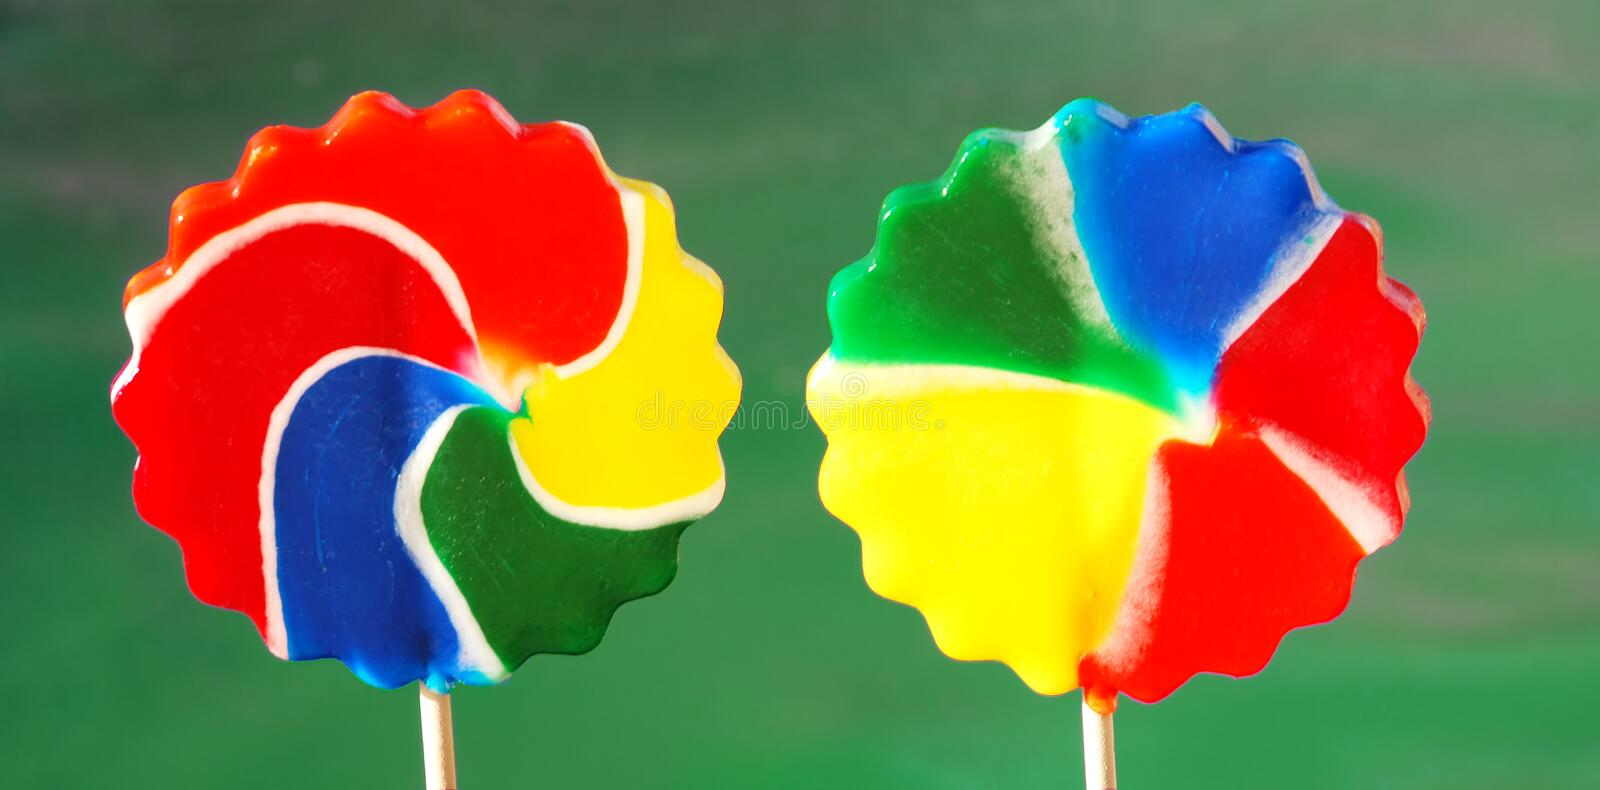 177 Pinwheel Candy Photos Free Royalty Free Stock Photos From Dreamstime